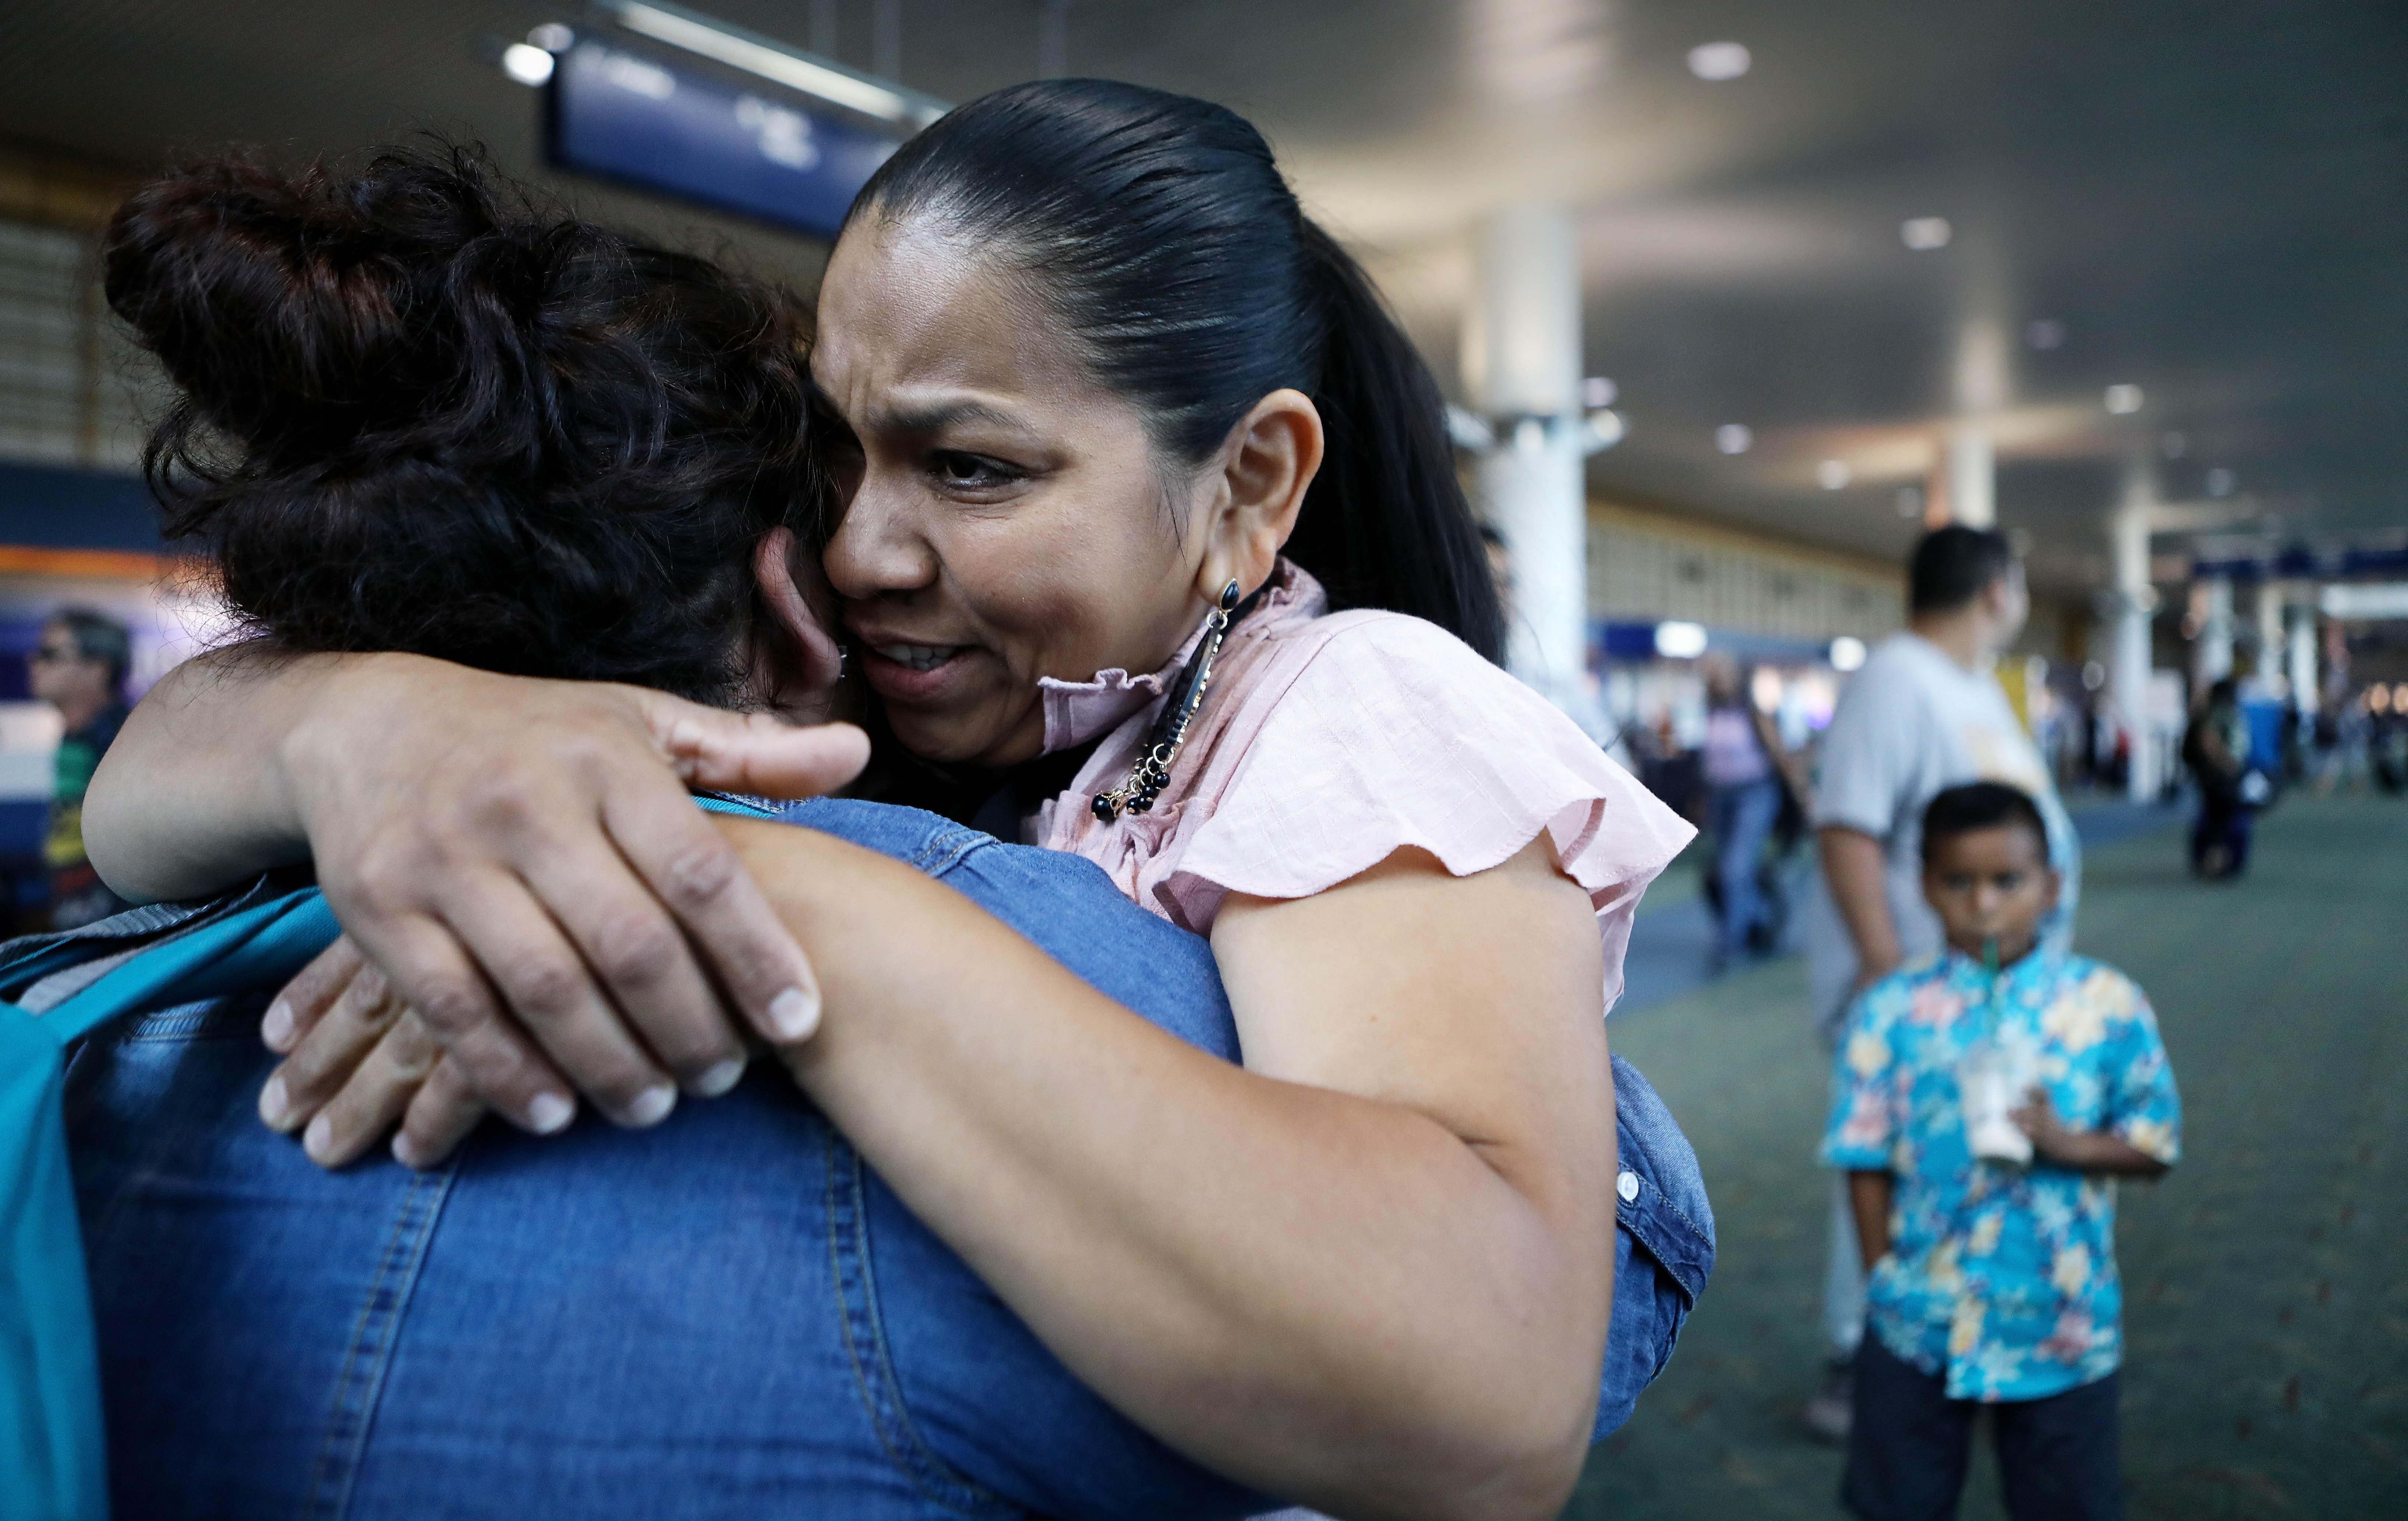 GettyImages-Texas Migrant